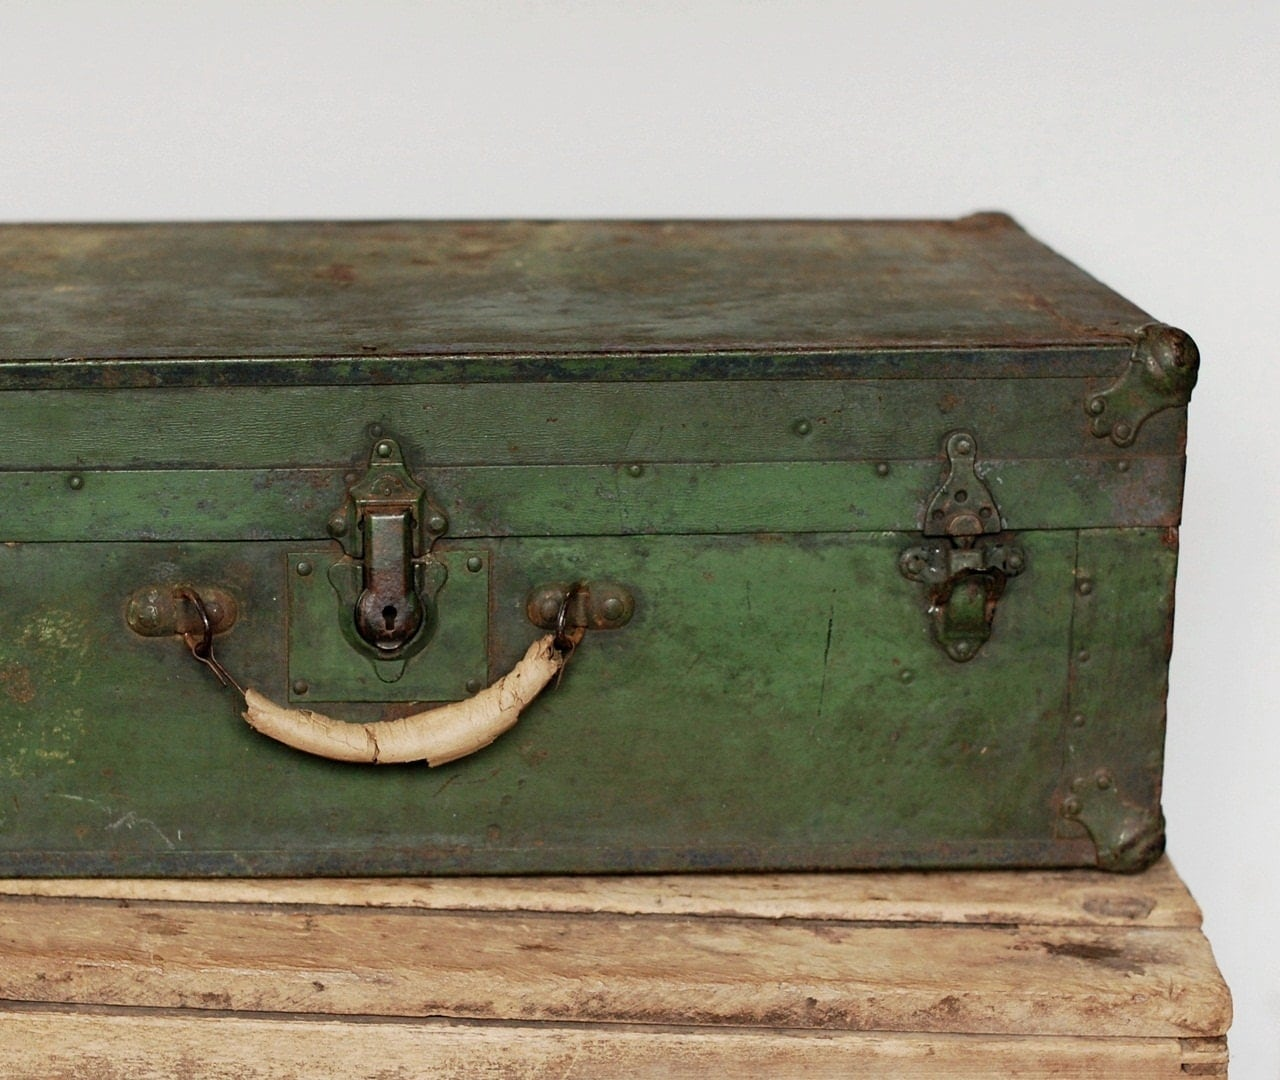 Rustic Antique Green Trunk Metal Over Wood Vintage Luggage